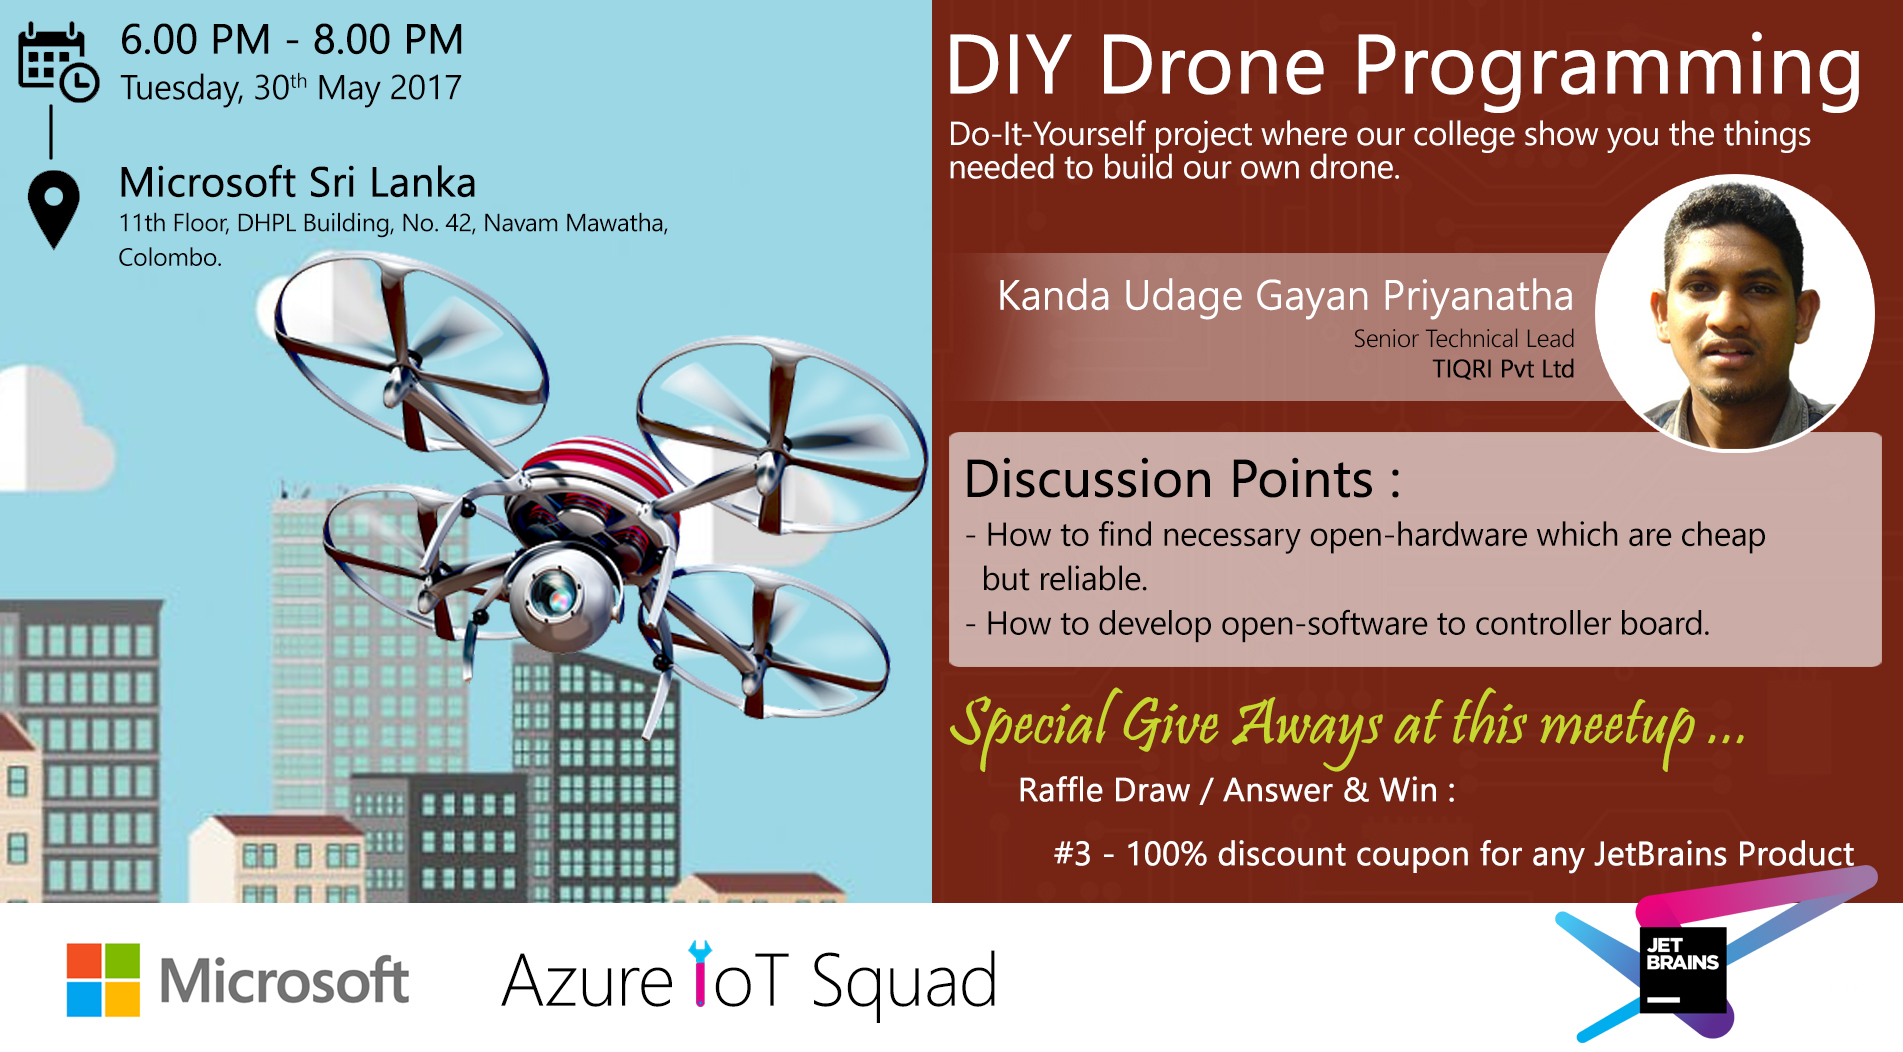 Diy Drone Software Diy Drone Programming By Auzre Iot Squad Microsoft Tech